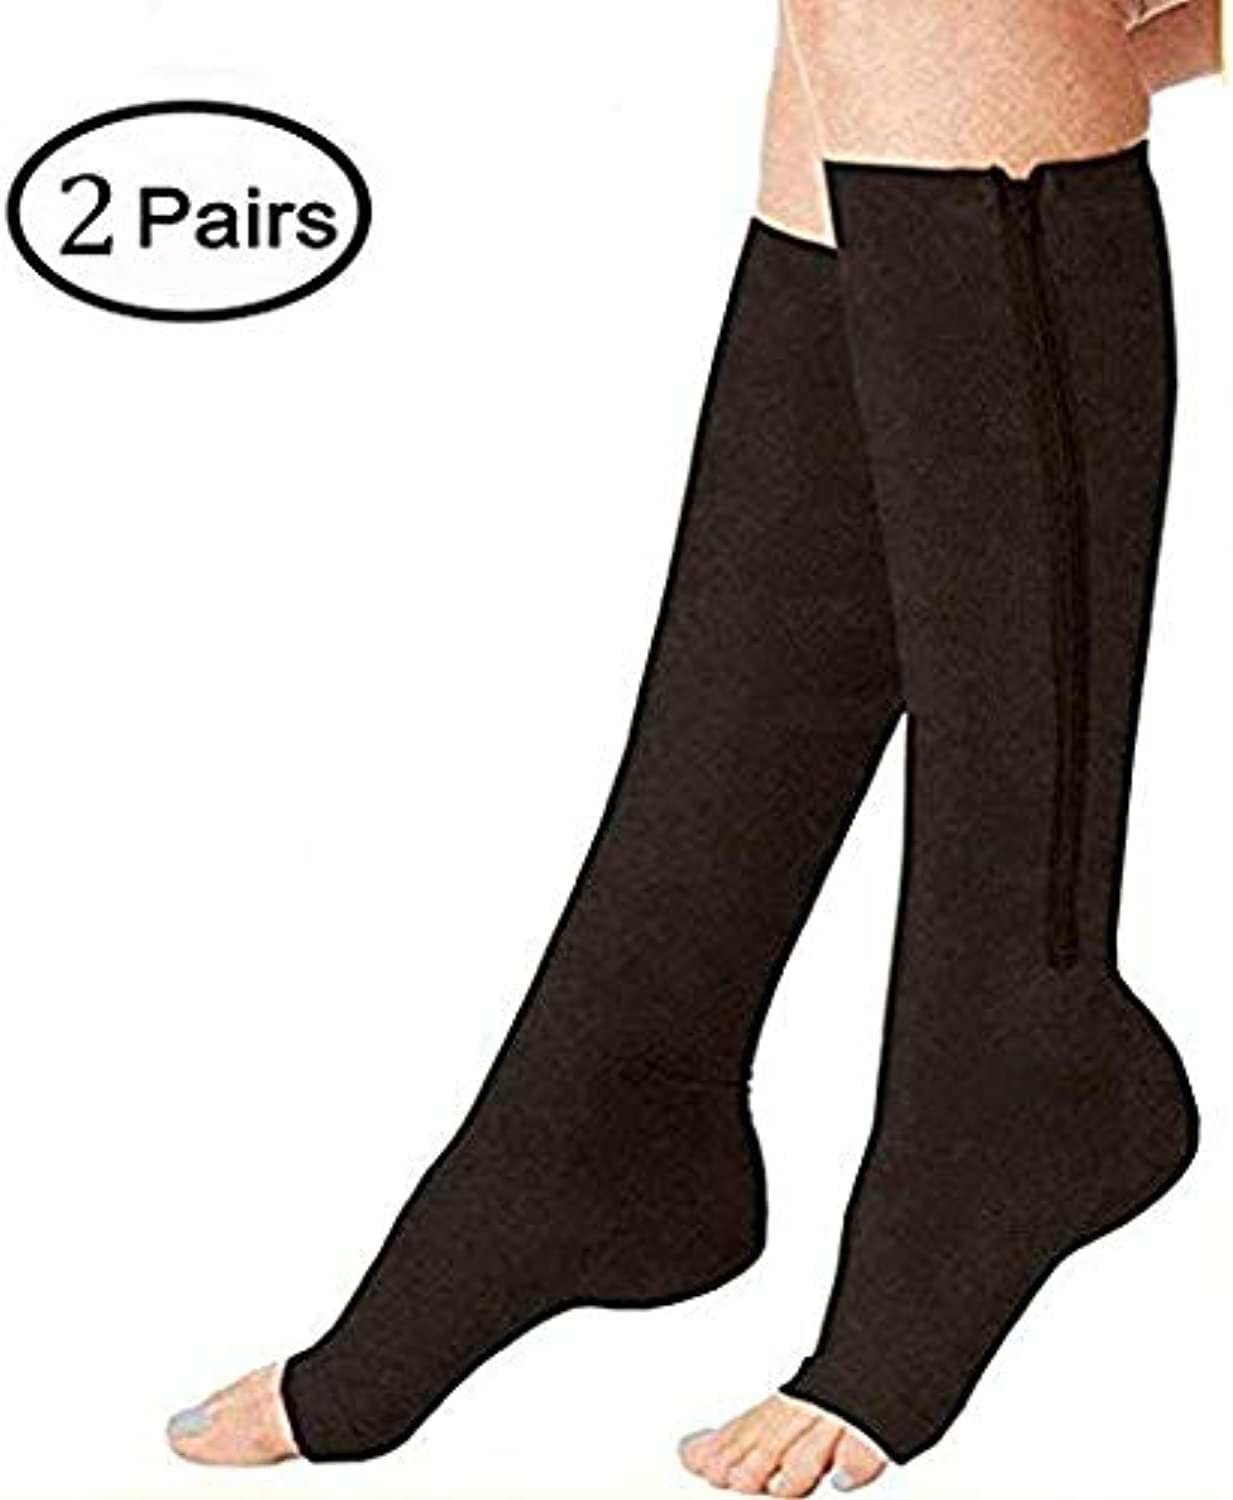 (2 Pairs) Compression Socks, New Compression Zip Sox Socks Stretchy Zipper Leg Support Unisex Open Toe Knee Stockings (S M, Black)